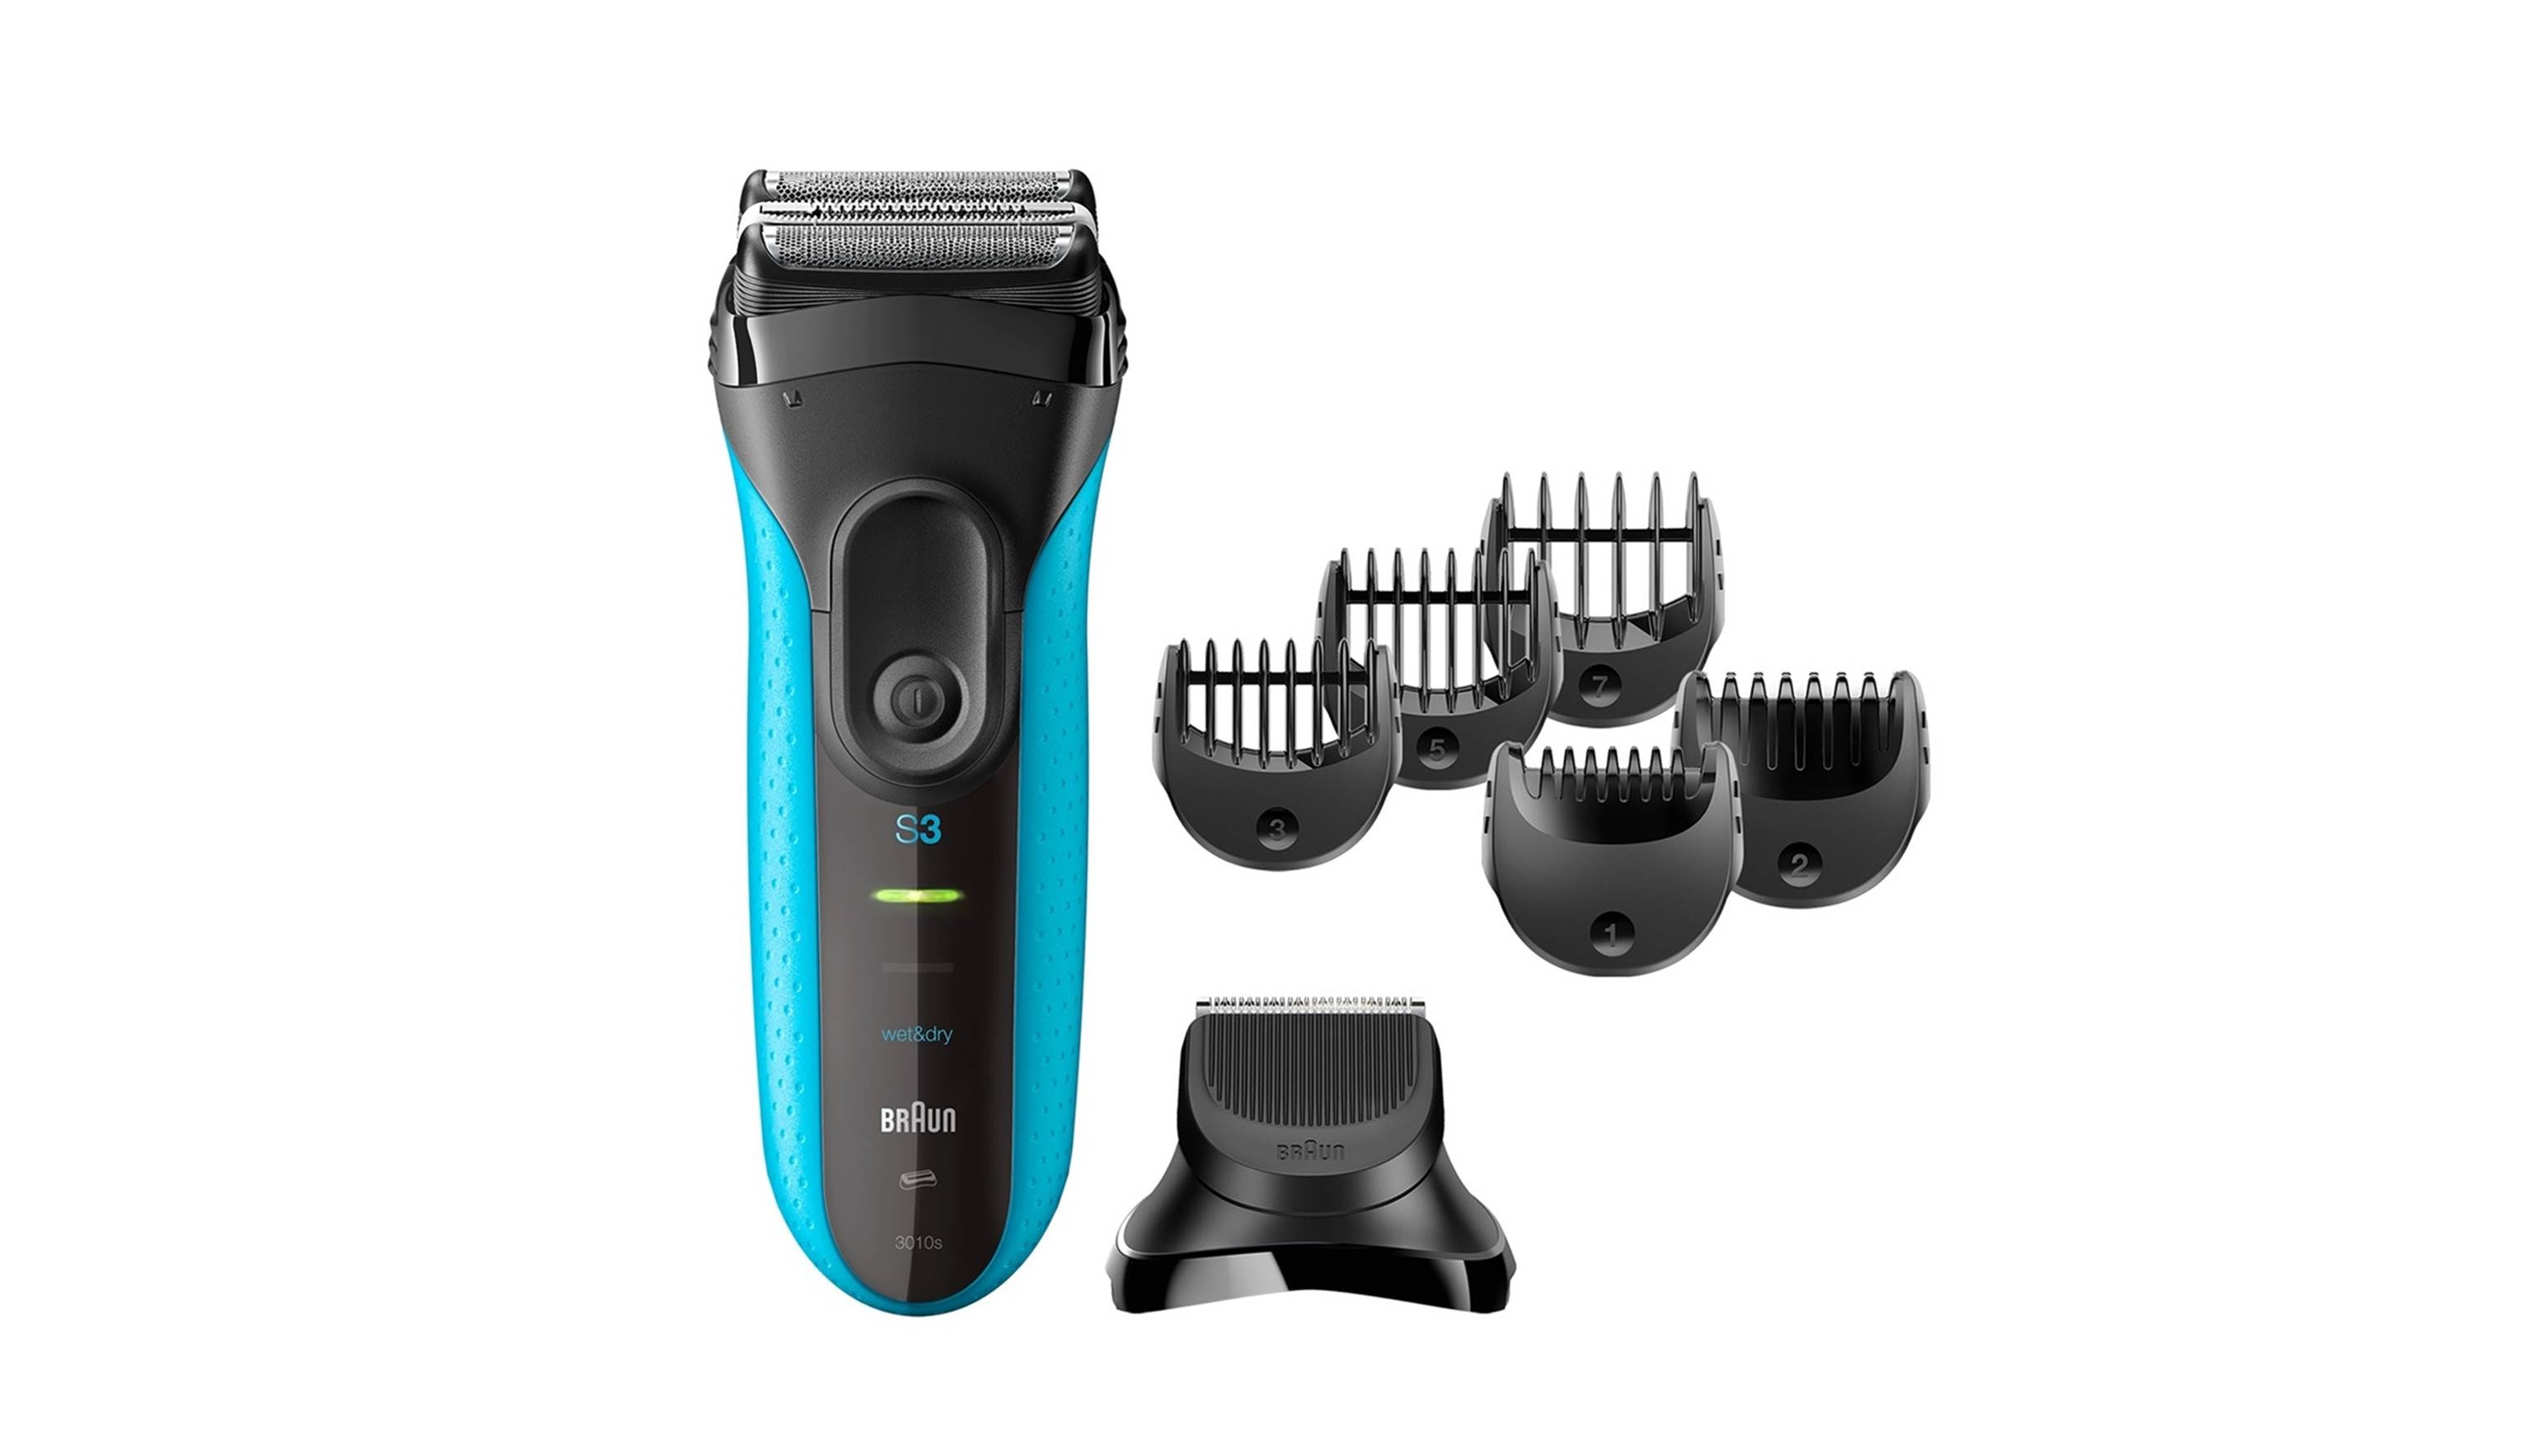 Braun Series 3 3010BT Rechargeable Shaver (1)